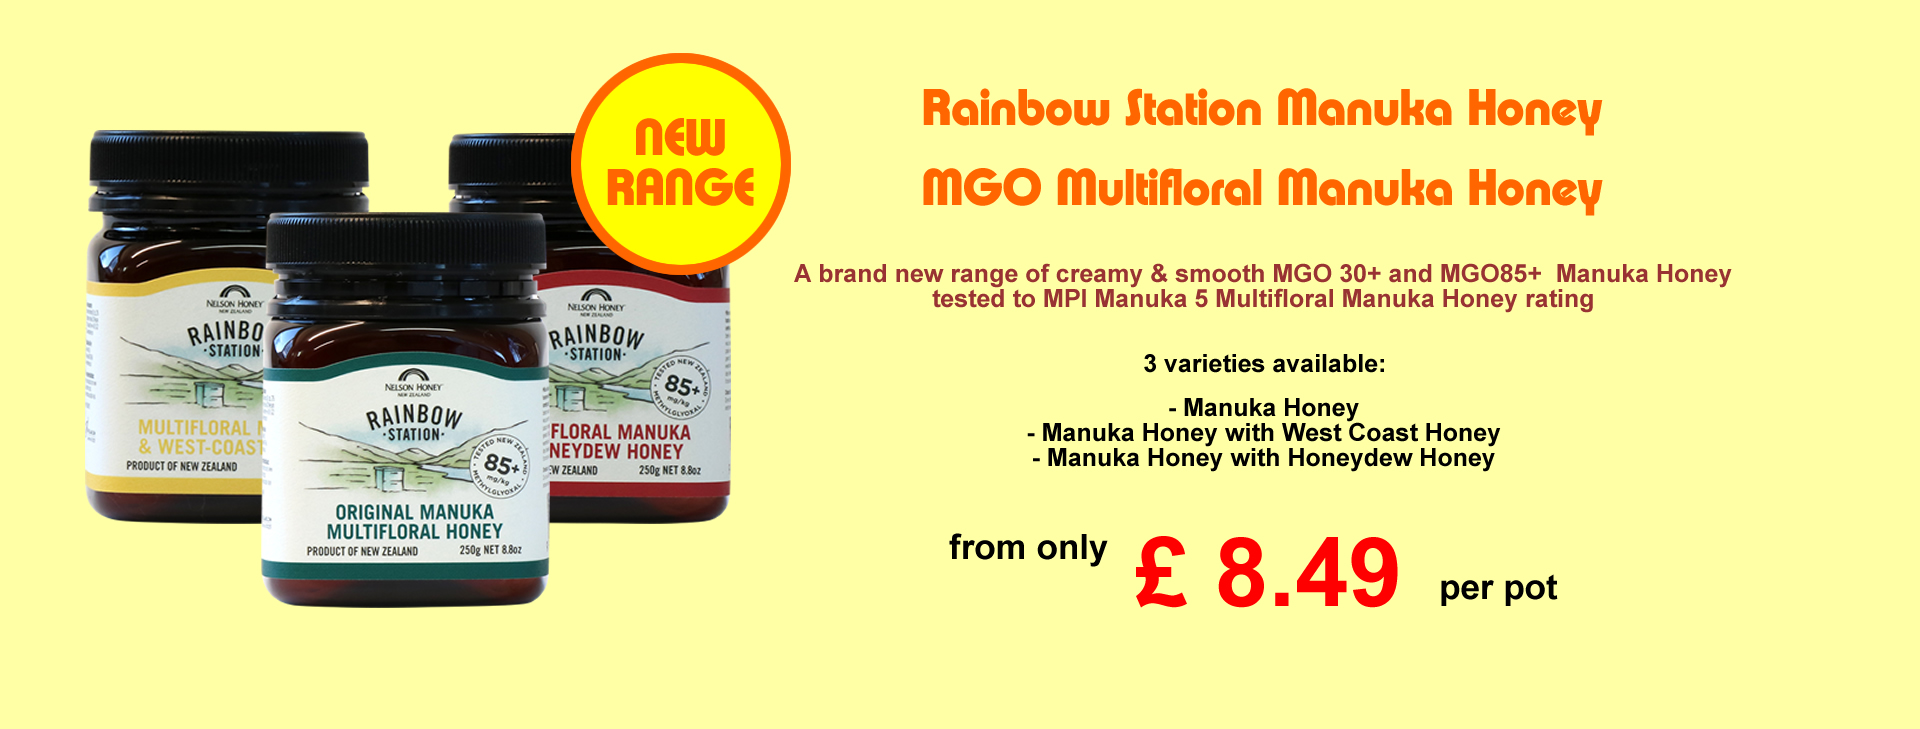 Brand New Range of Manuka Honey Rainbow Station, delicious & smooth MGO Manuka Honey - great value for money and now available in store